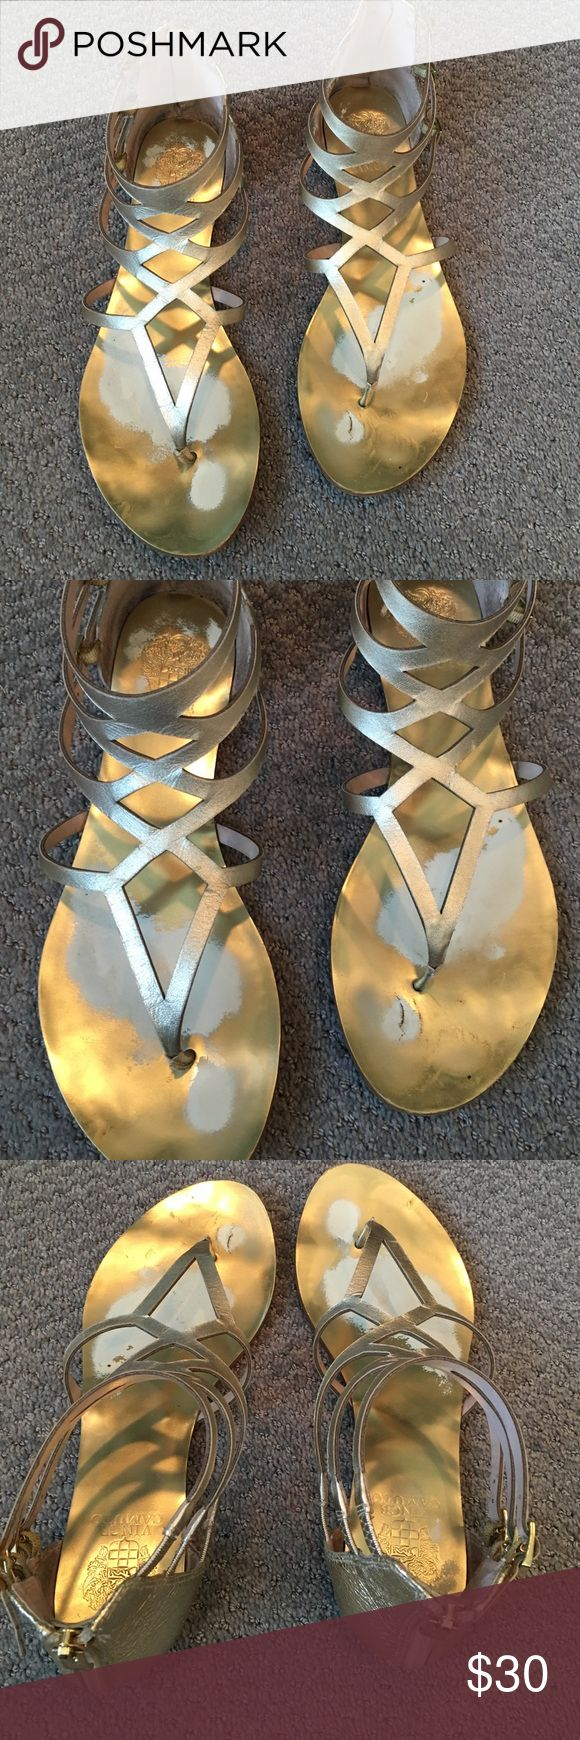 VINCE CAMUTO GOLD GLADIATOR FLATS VINCE CAMUTO GOLD GLADIATOR FLATS. WORN. ZIPPERS UP THE BACK. ONLY WASHED OUT INSIDE ONLY. VERY COMFORTABLE. Vince Camuto Shoes Sandals